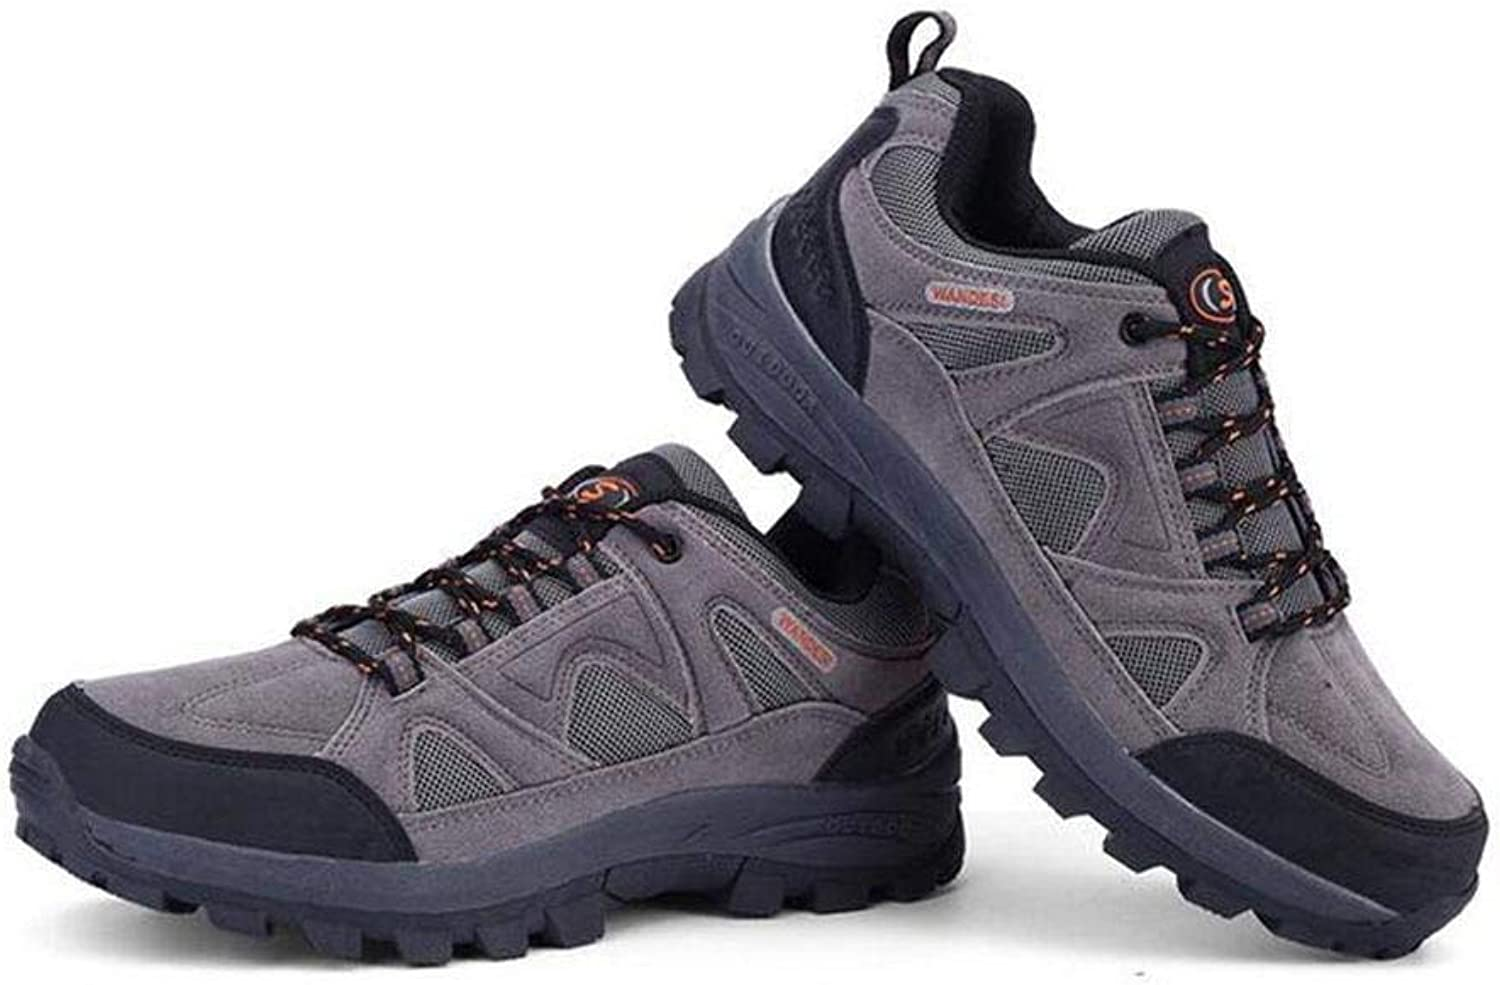 FuweiEncore sportsOutdoor hiking shoes men and women walking shoes anti-skid low to help outdoor shoes (color   Grey, Size   36)